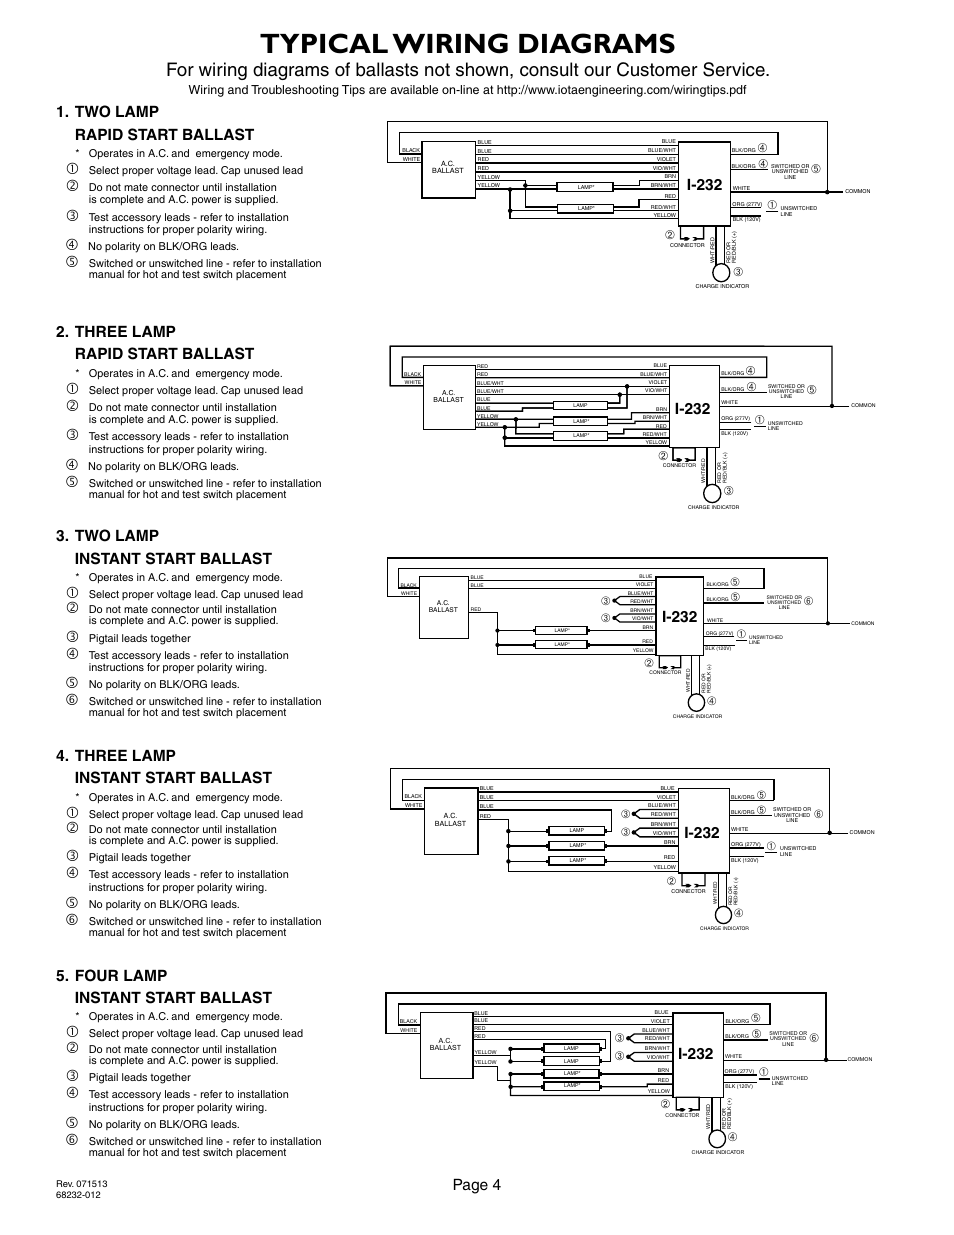 iota-i-232-page4  Lamp Rapid Start Ballast Wiring Diagram on